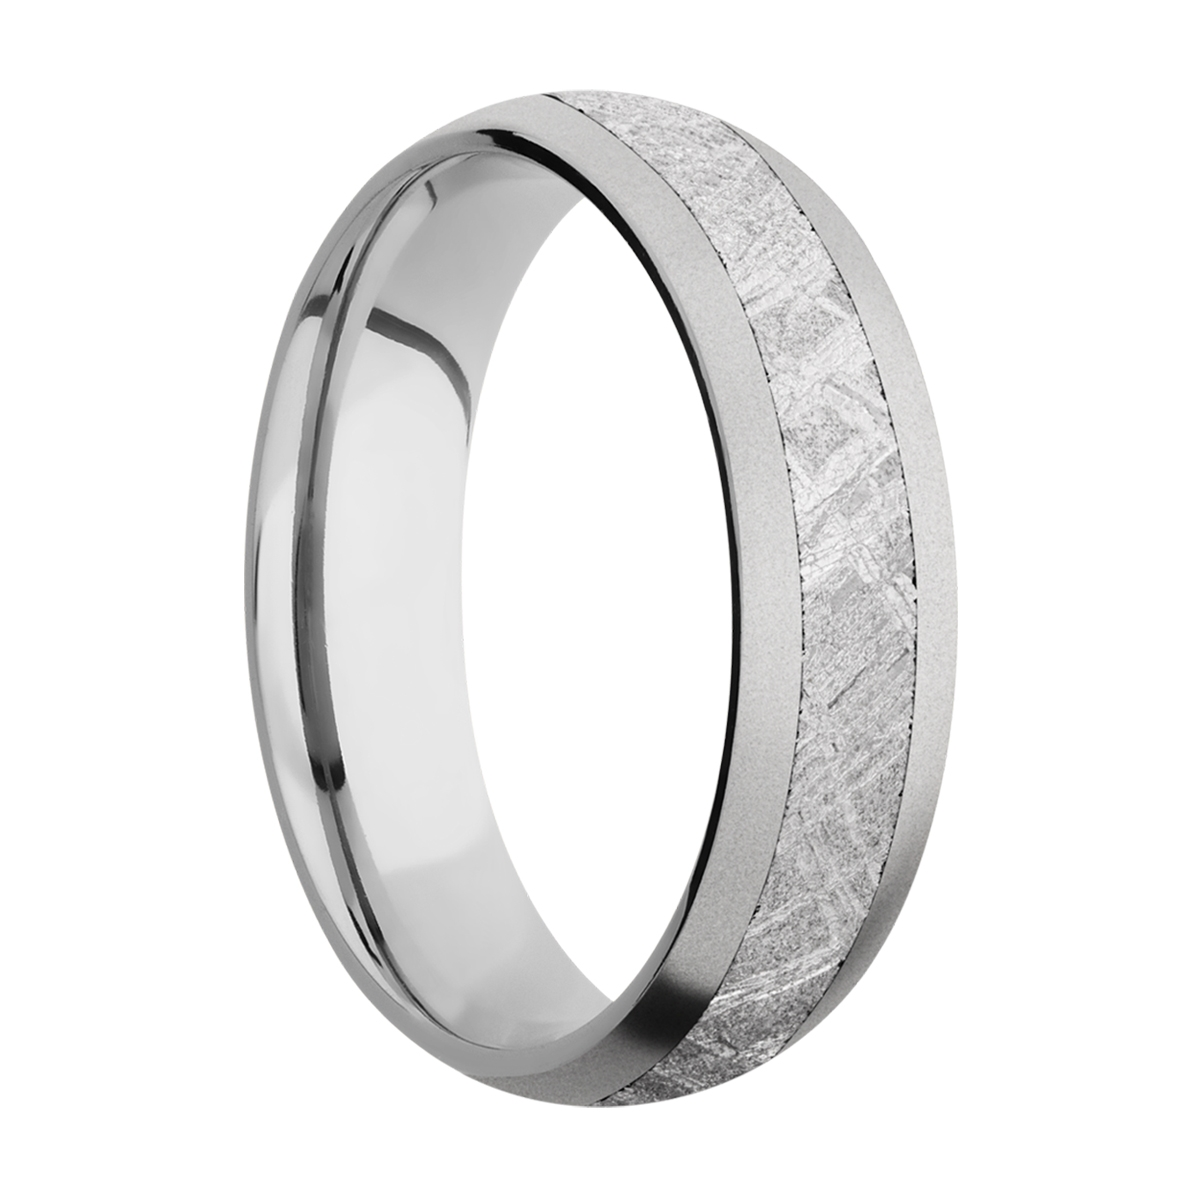 Lashbrook CC6D13/METEORITE Cobalt Chrome Wedding Ring or Band Alternative View 1